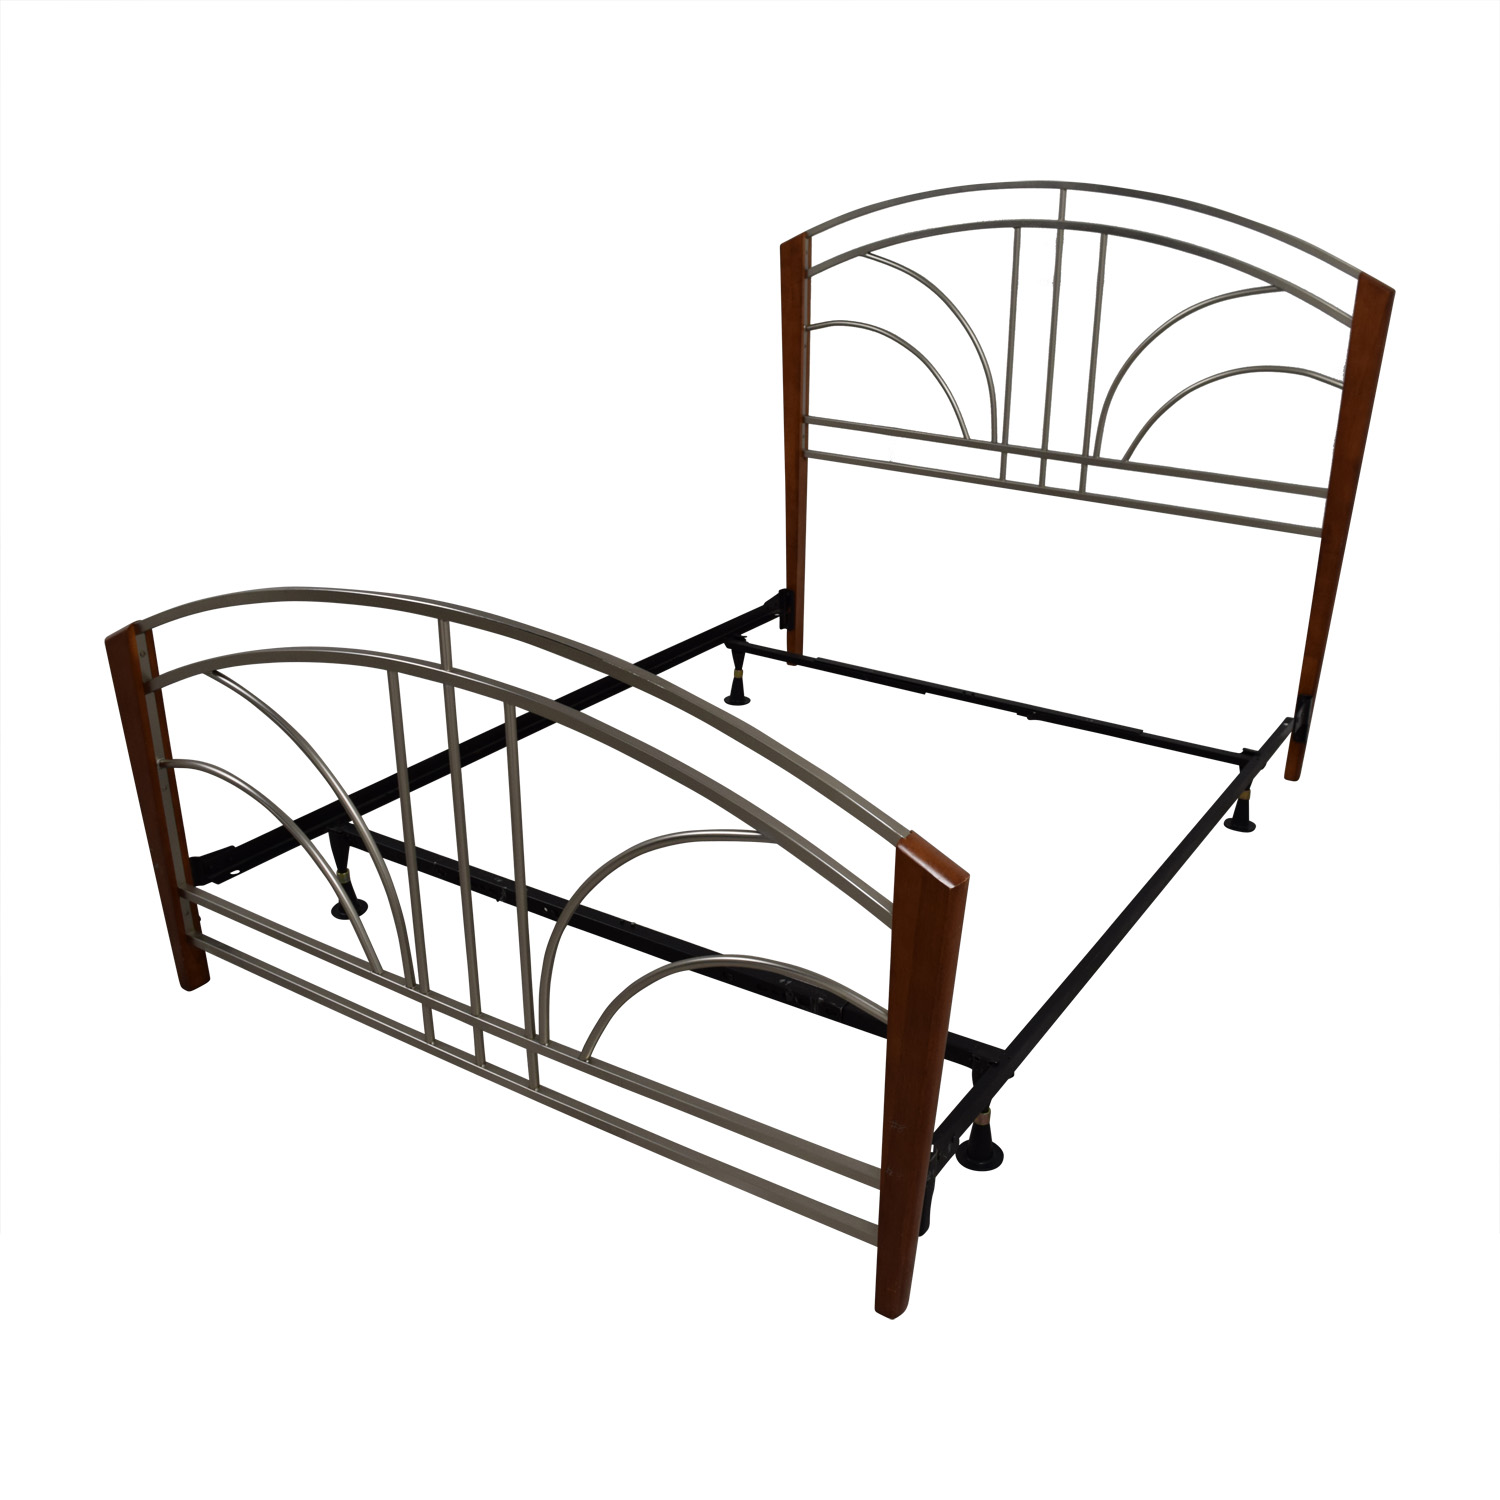 90 off wood post and metal frame queen bed frame beds for Used wooden bed frames